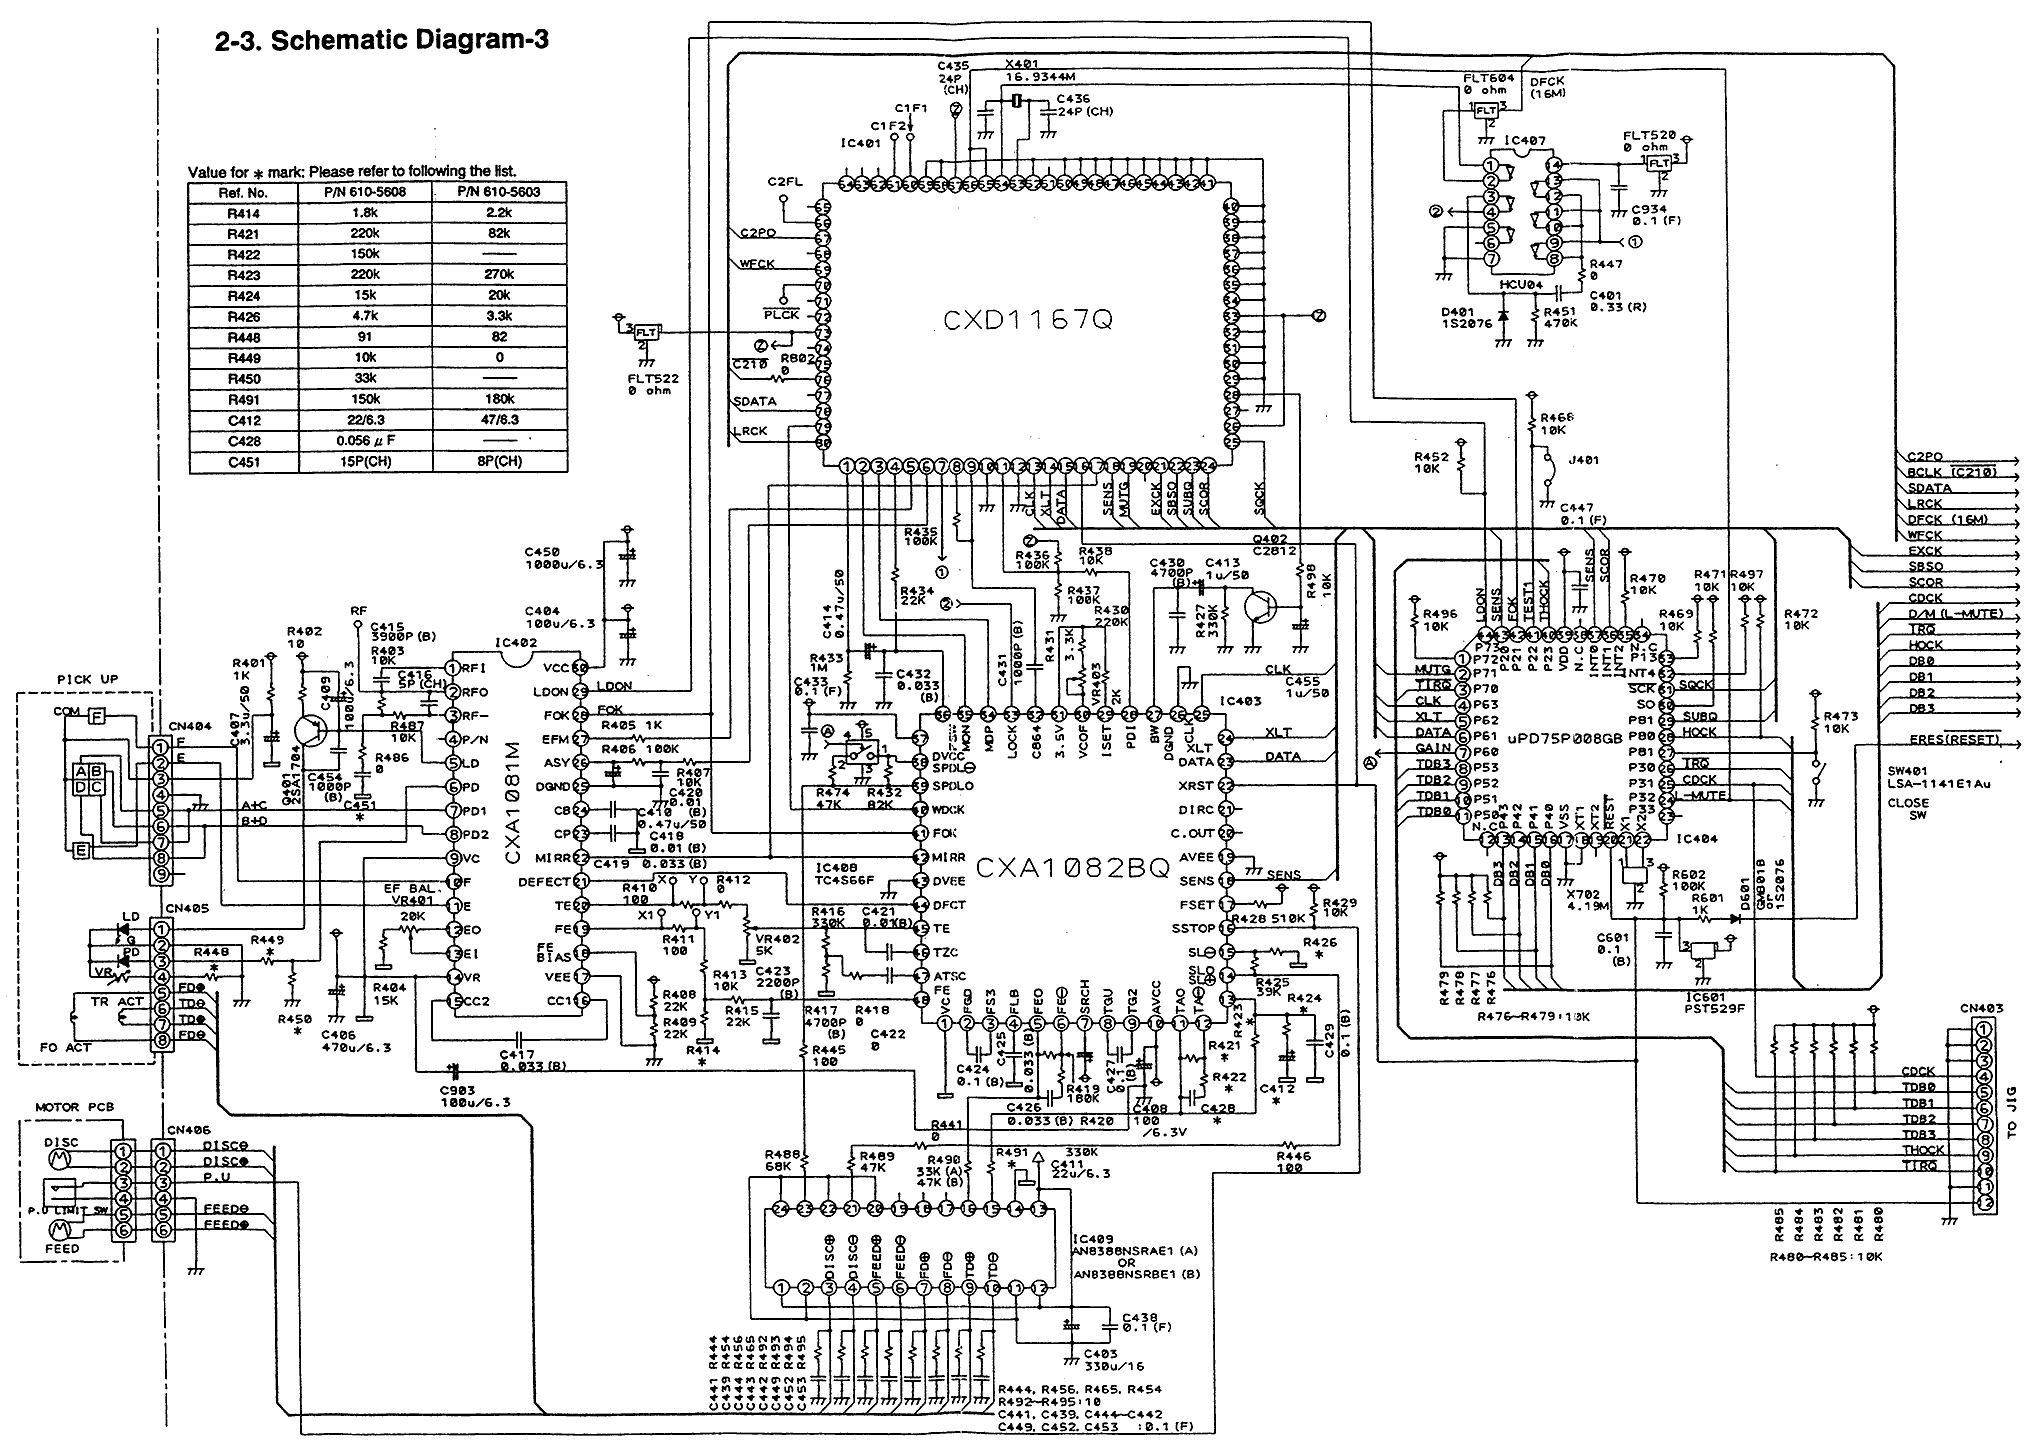 Schematicsconsole Related Schematics Nfg Games Gamesx Ab C D Circuit Diagram Sega Cd V2 Funai Schematic Section